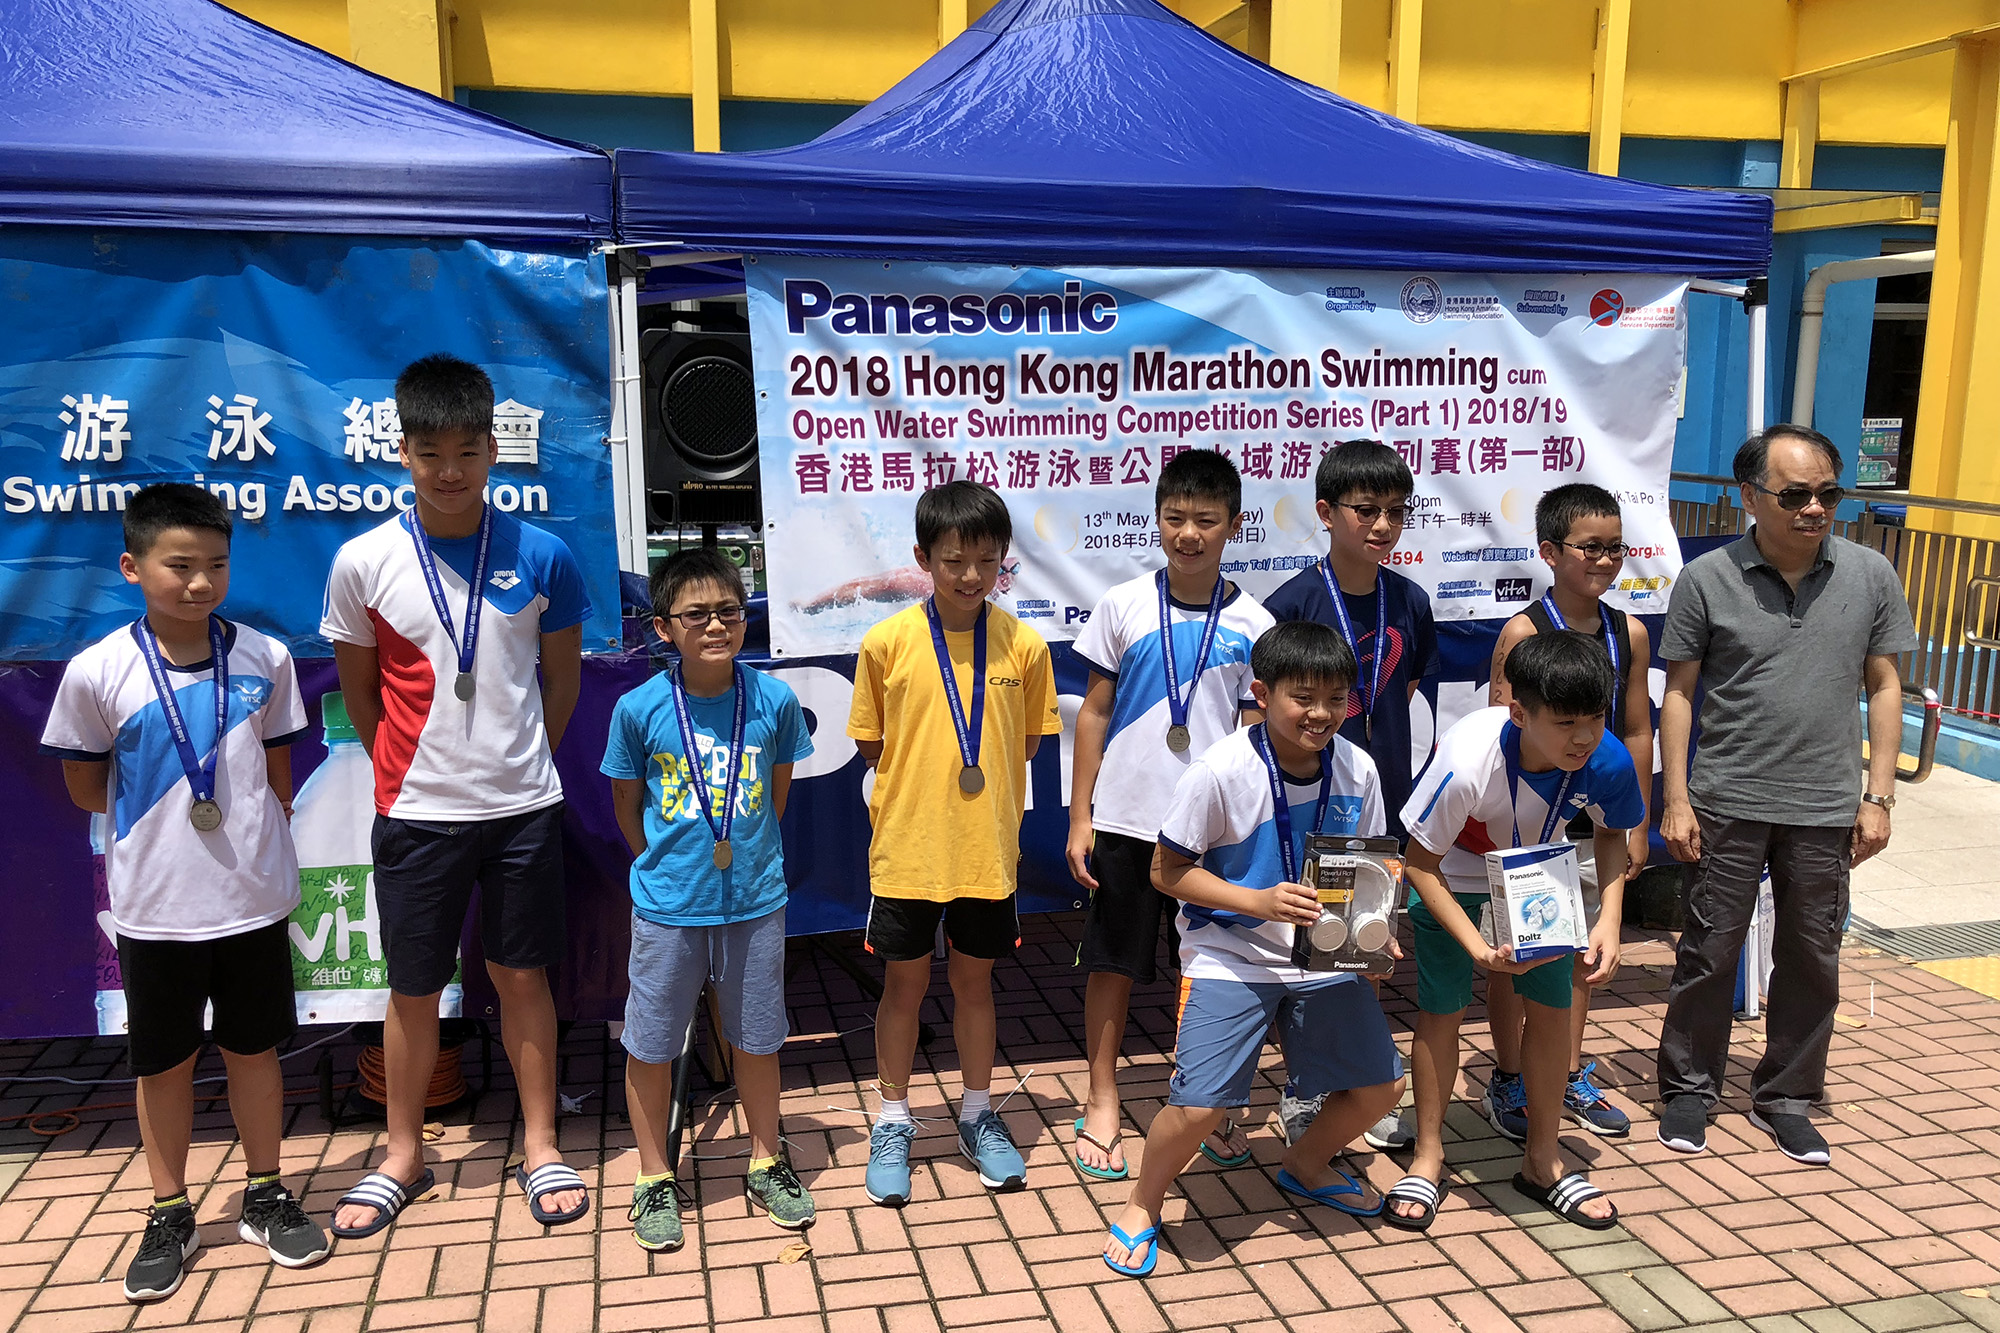 Win Tin Open Water Part I 2018 - 1